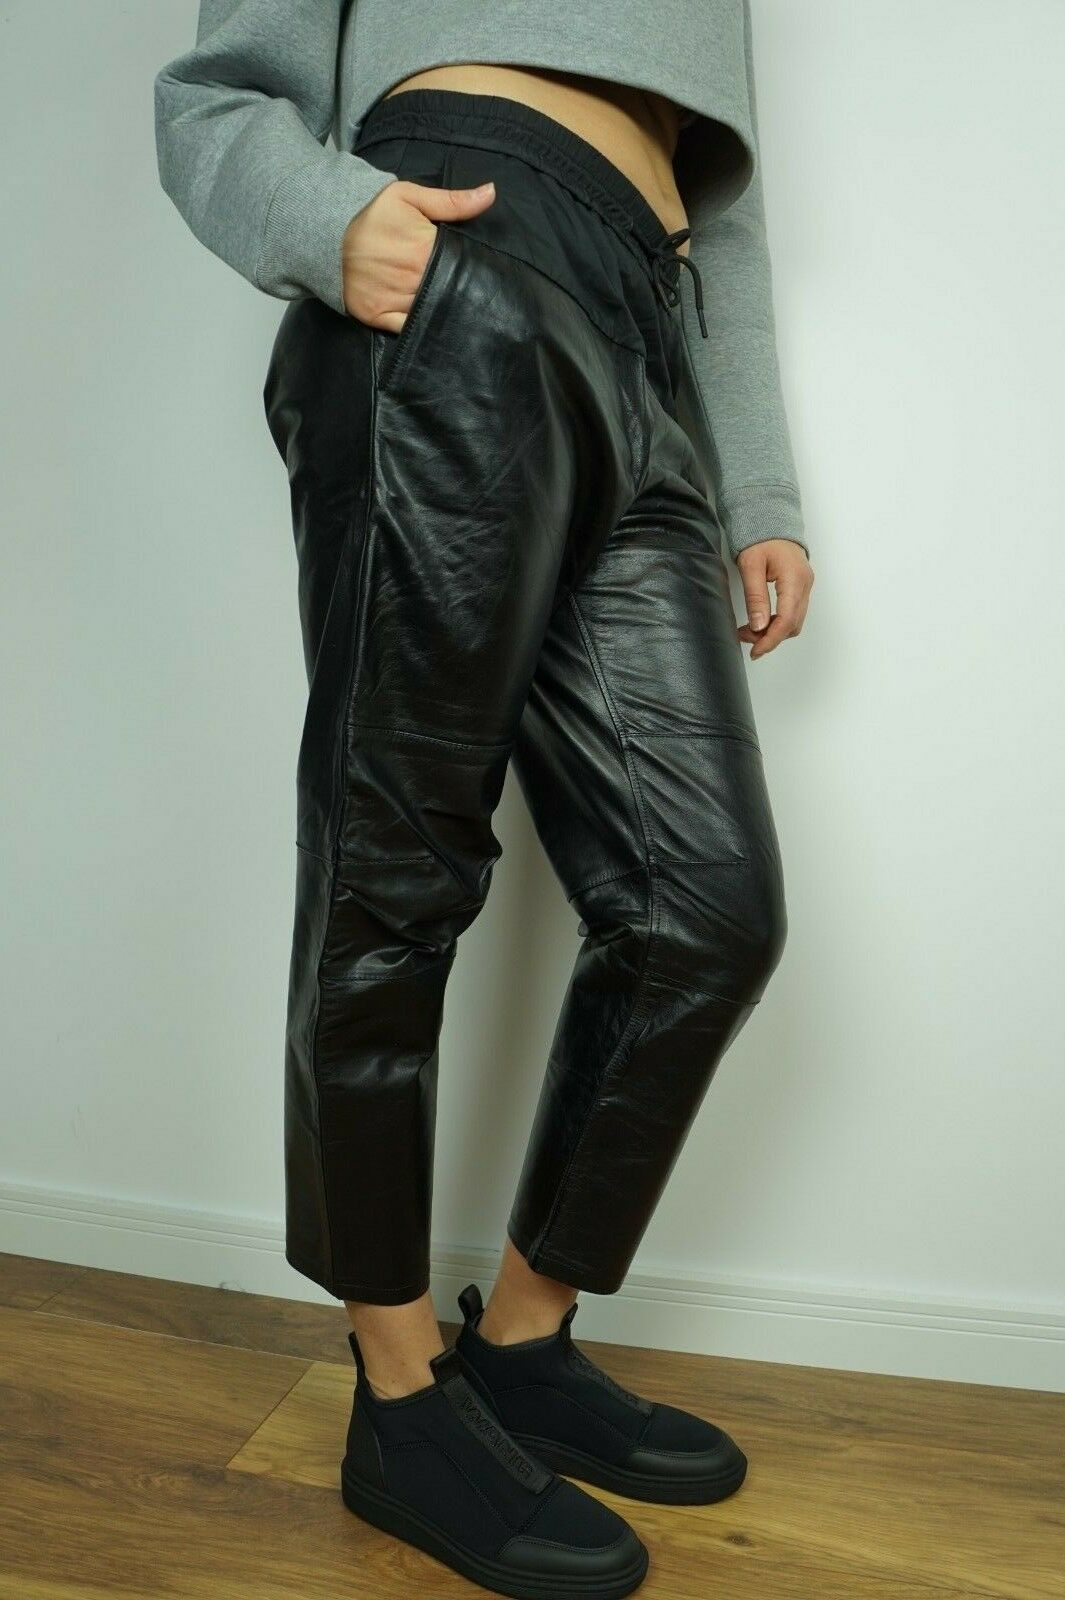 NEW H&M ALEXANDER WANG PANTS LEATHER JOGGING TROUSERS US 4 6 8 10 12 34 36 38 40